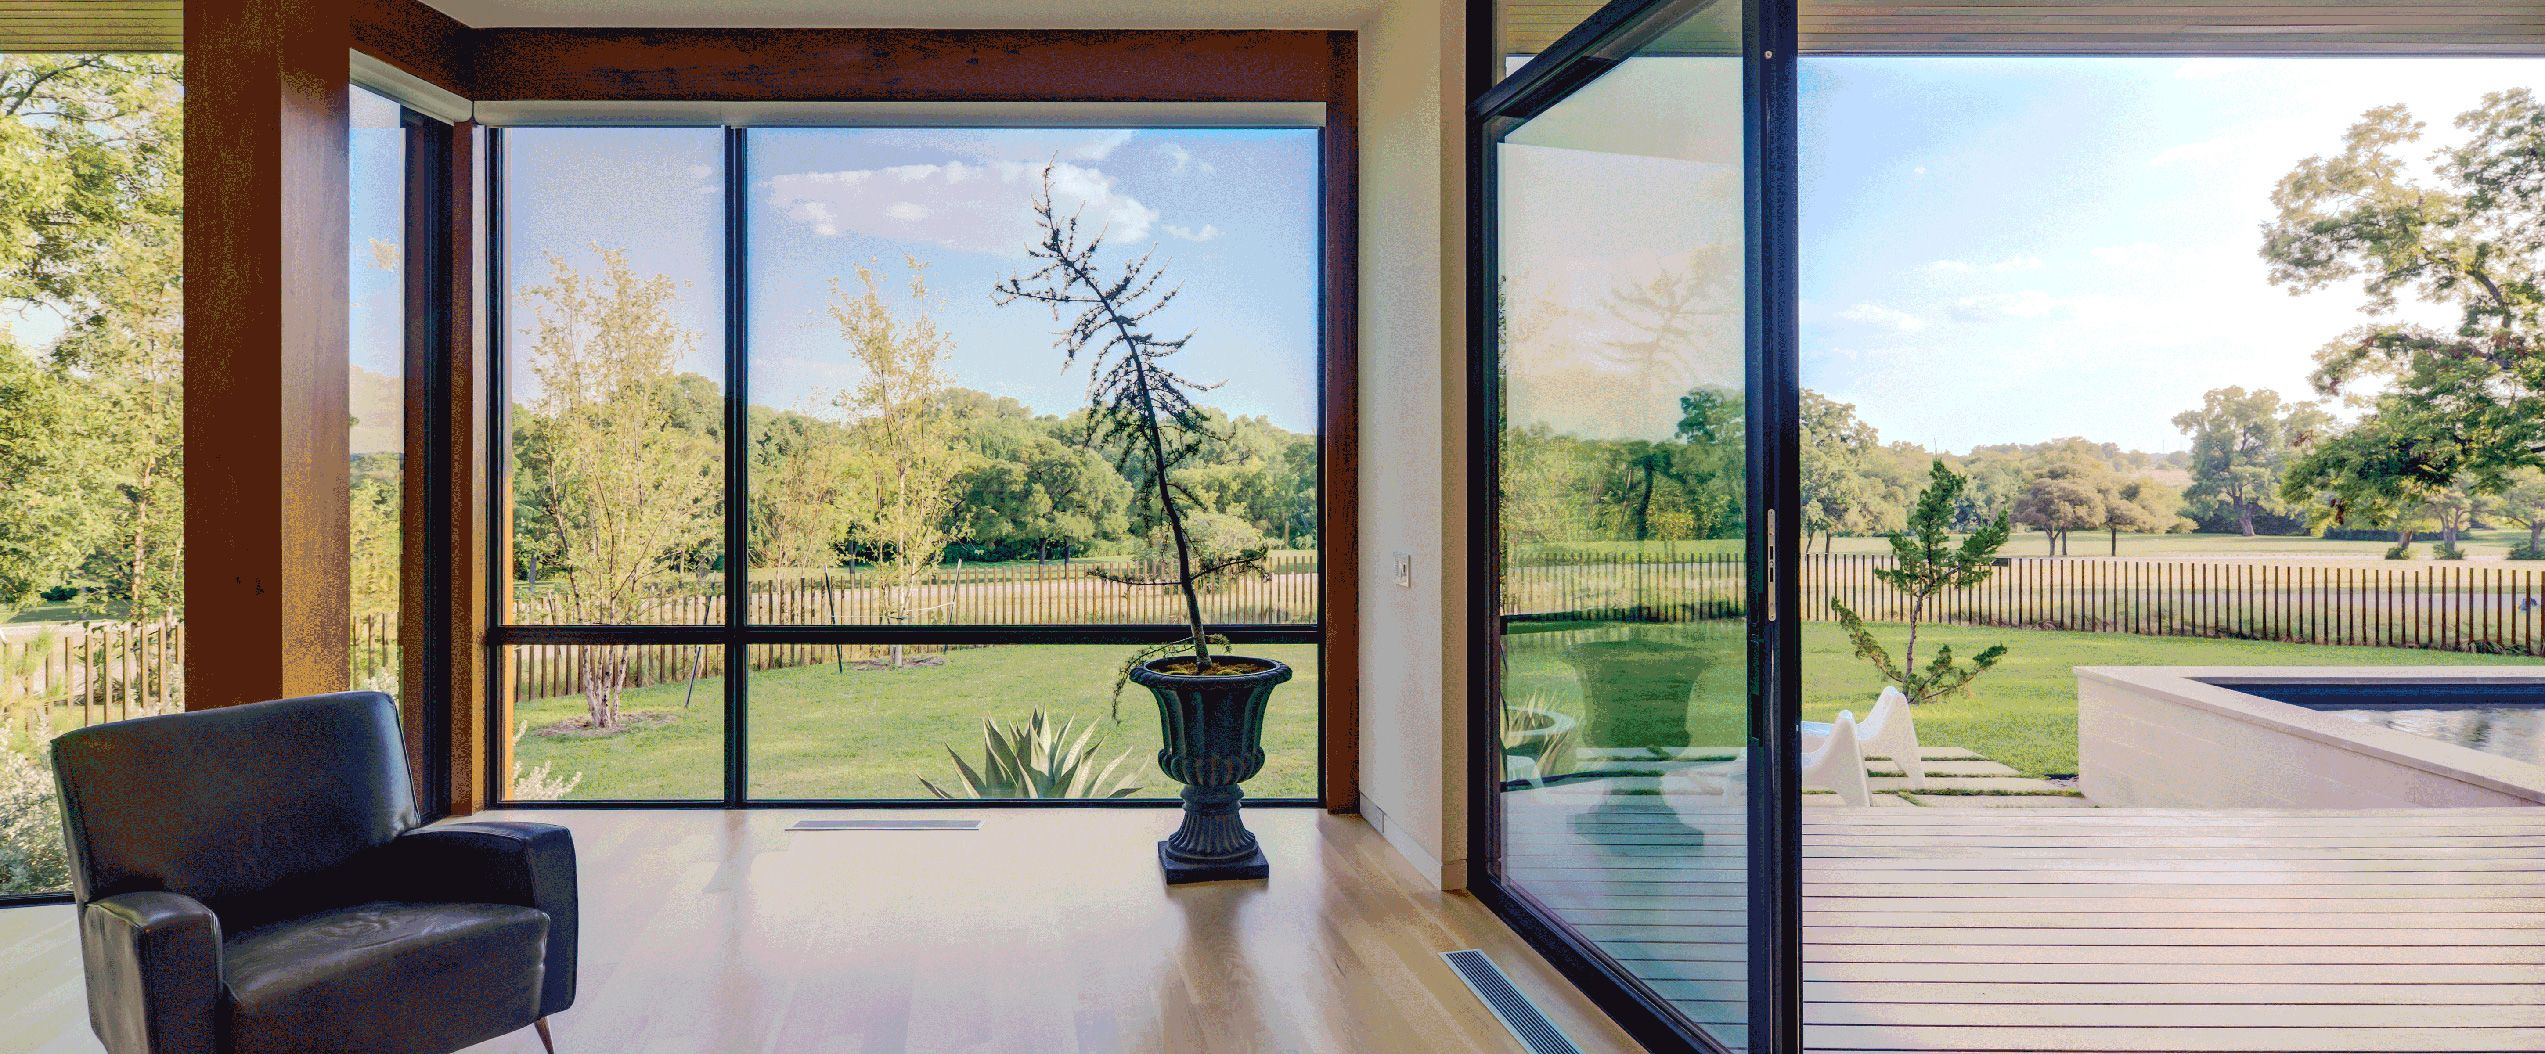 Western Window Systems Series 600 Sliding Glass Door Is More Than